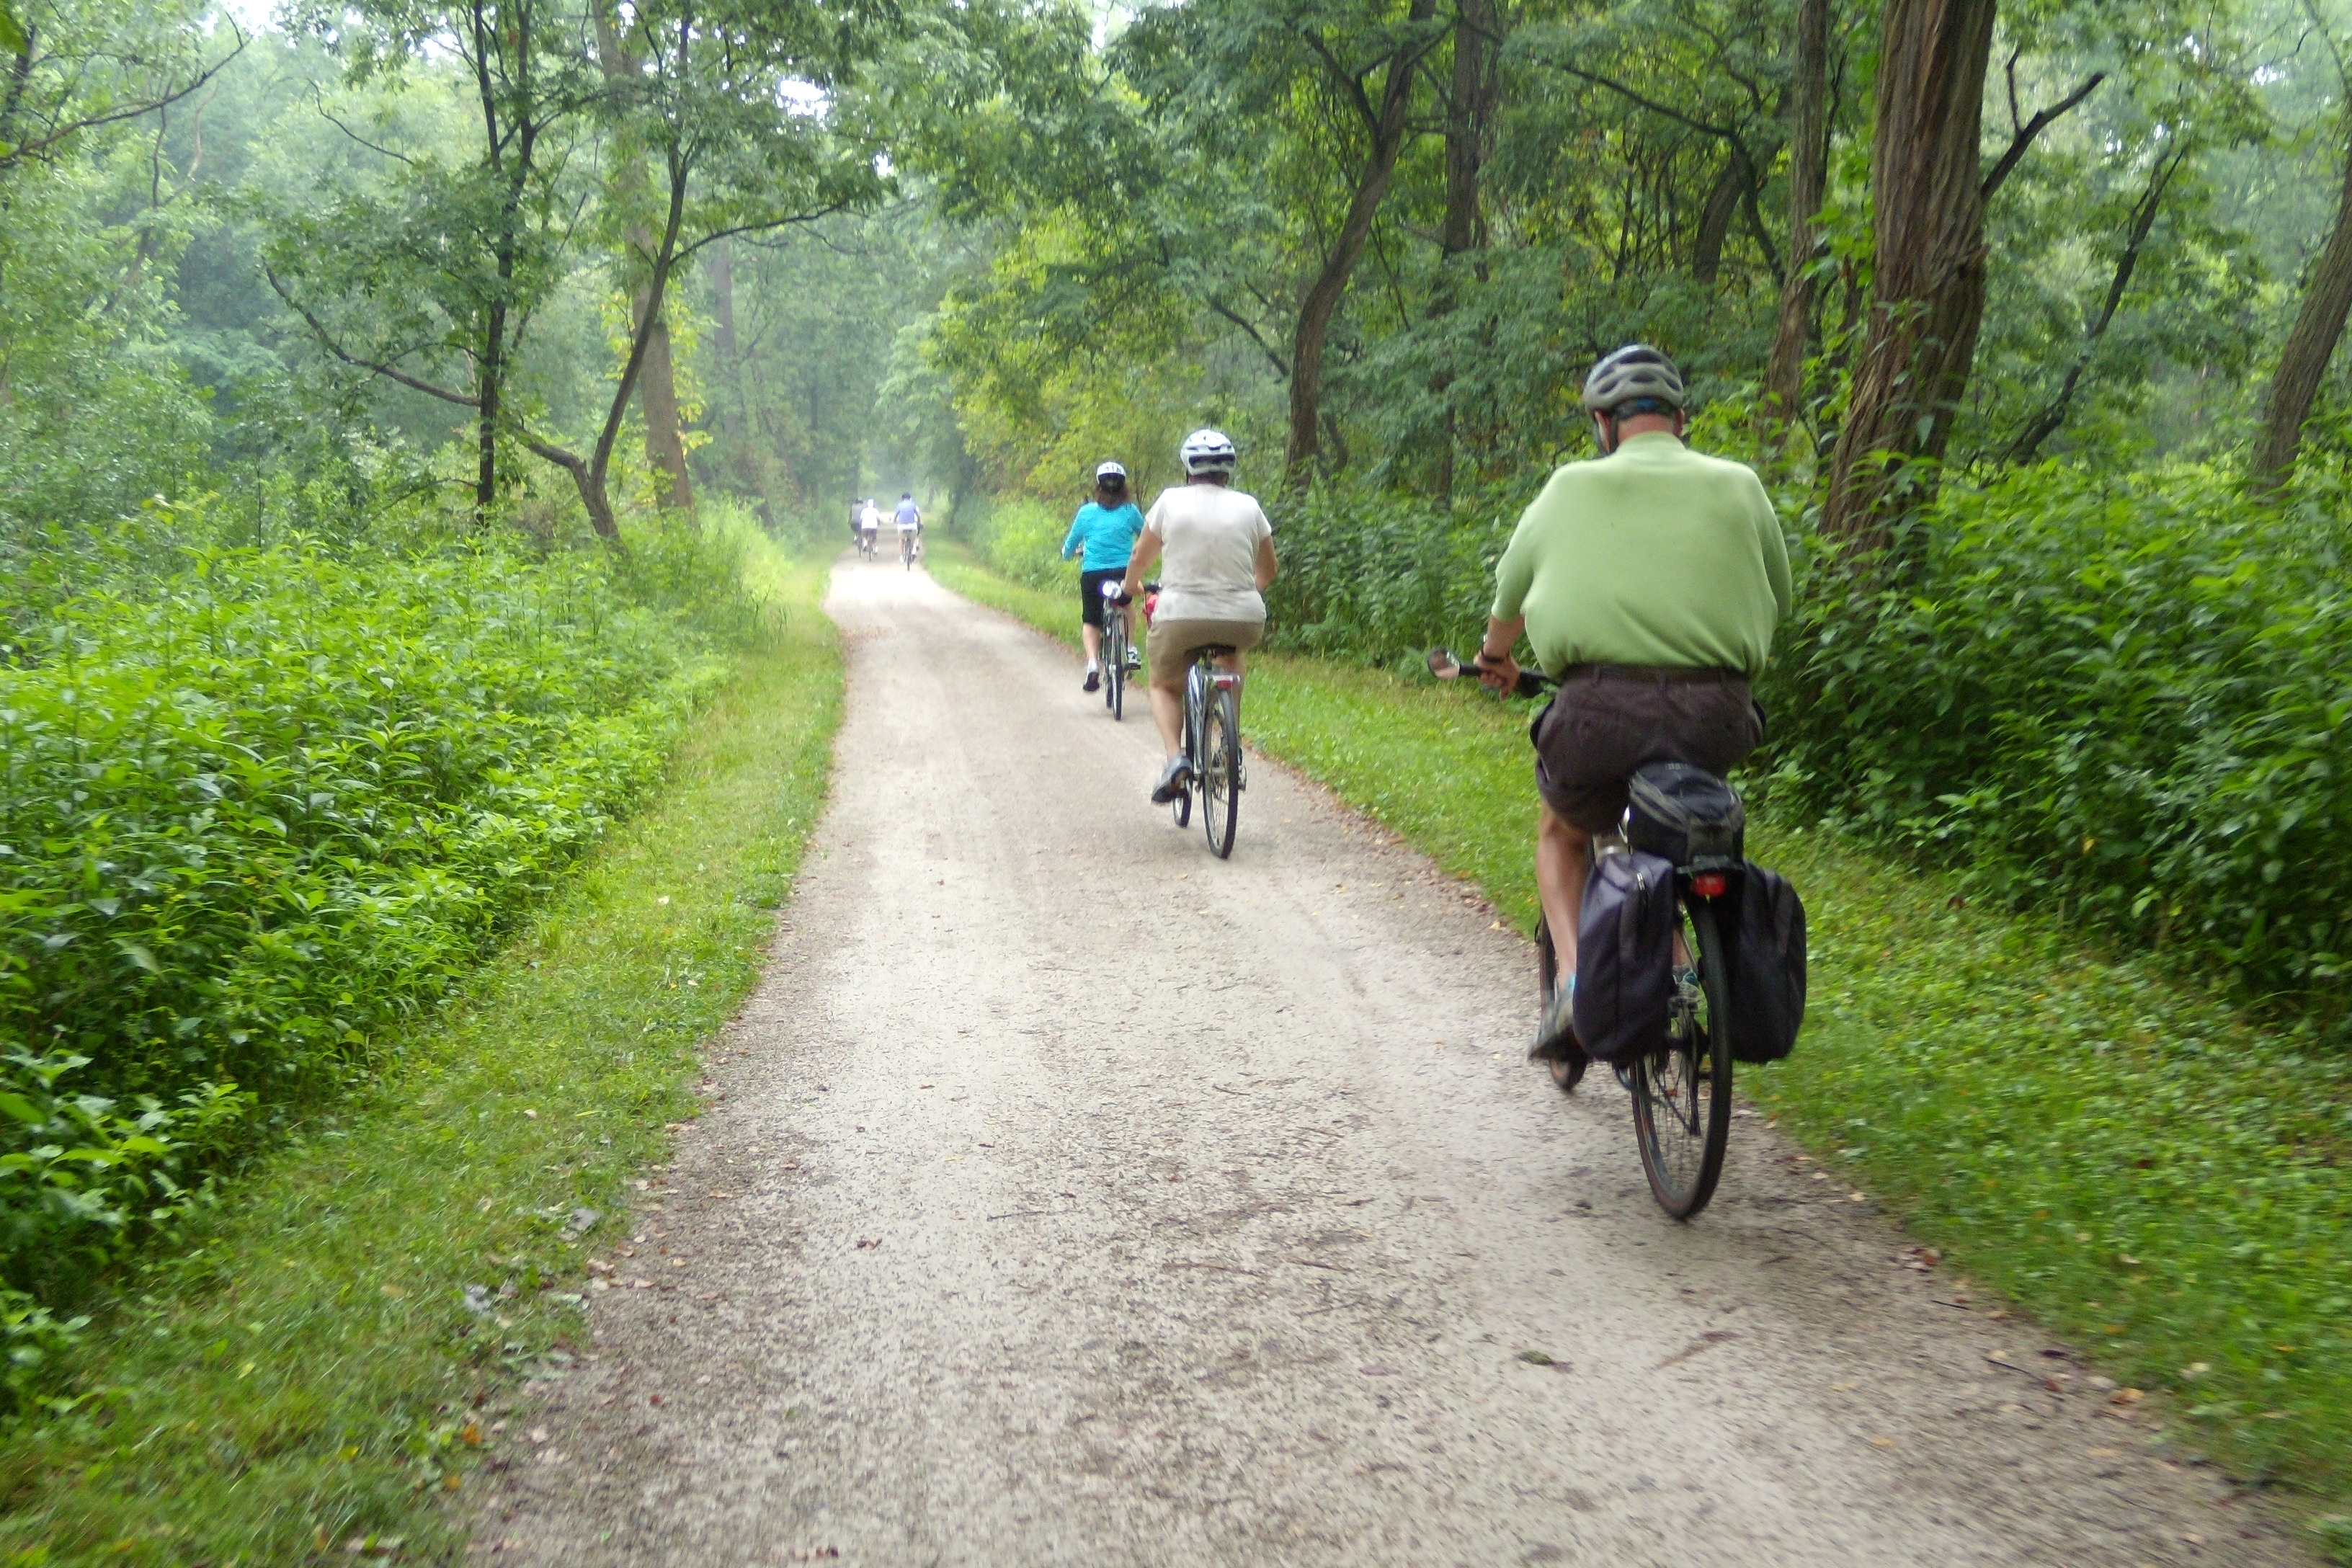 Towpath Biking